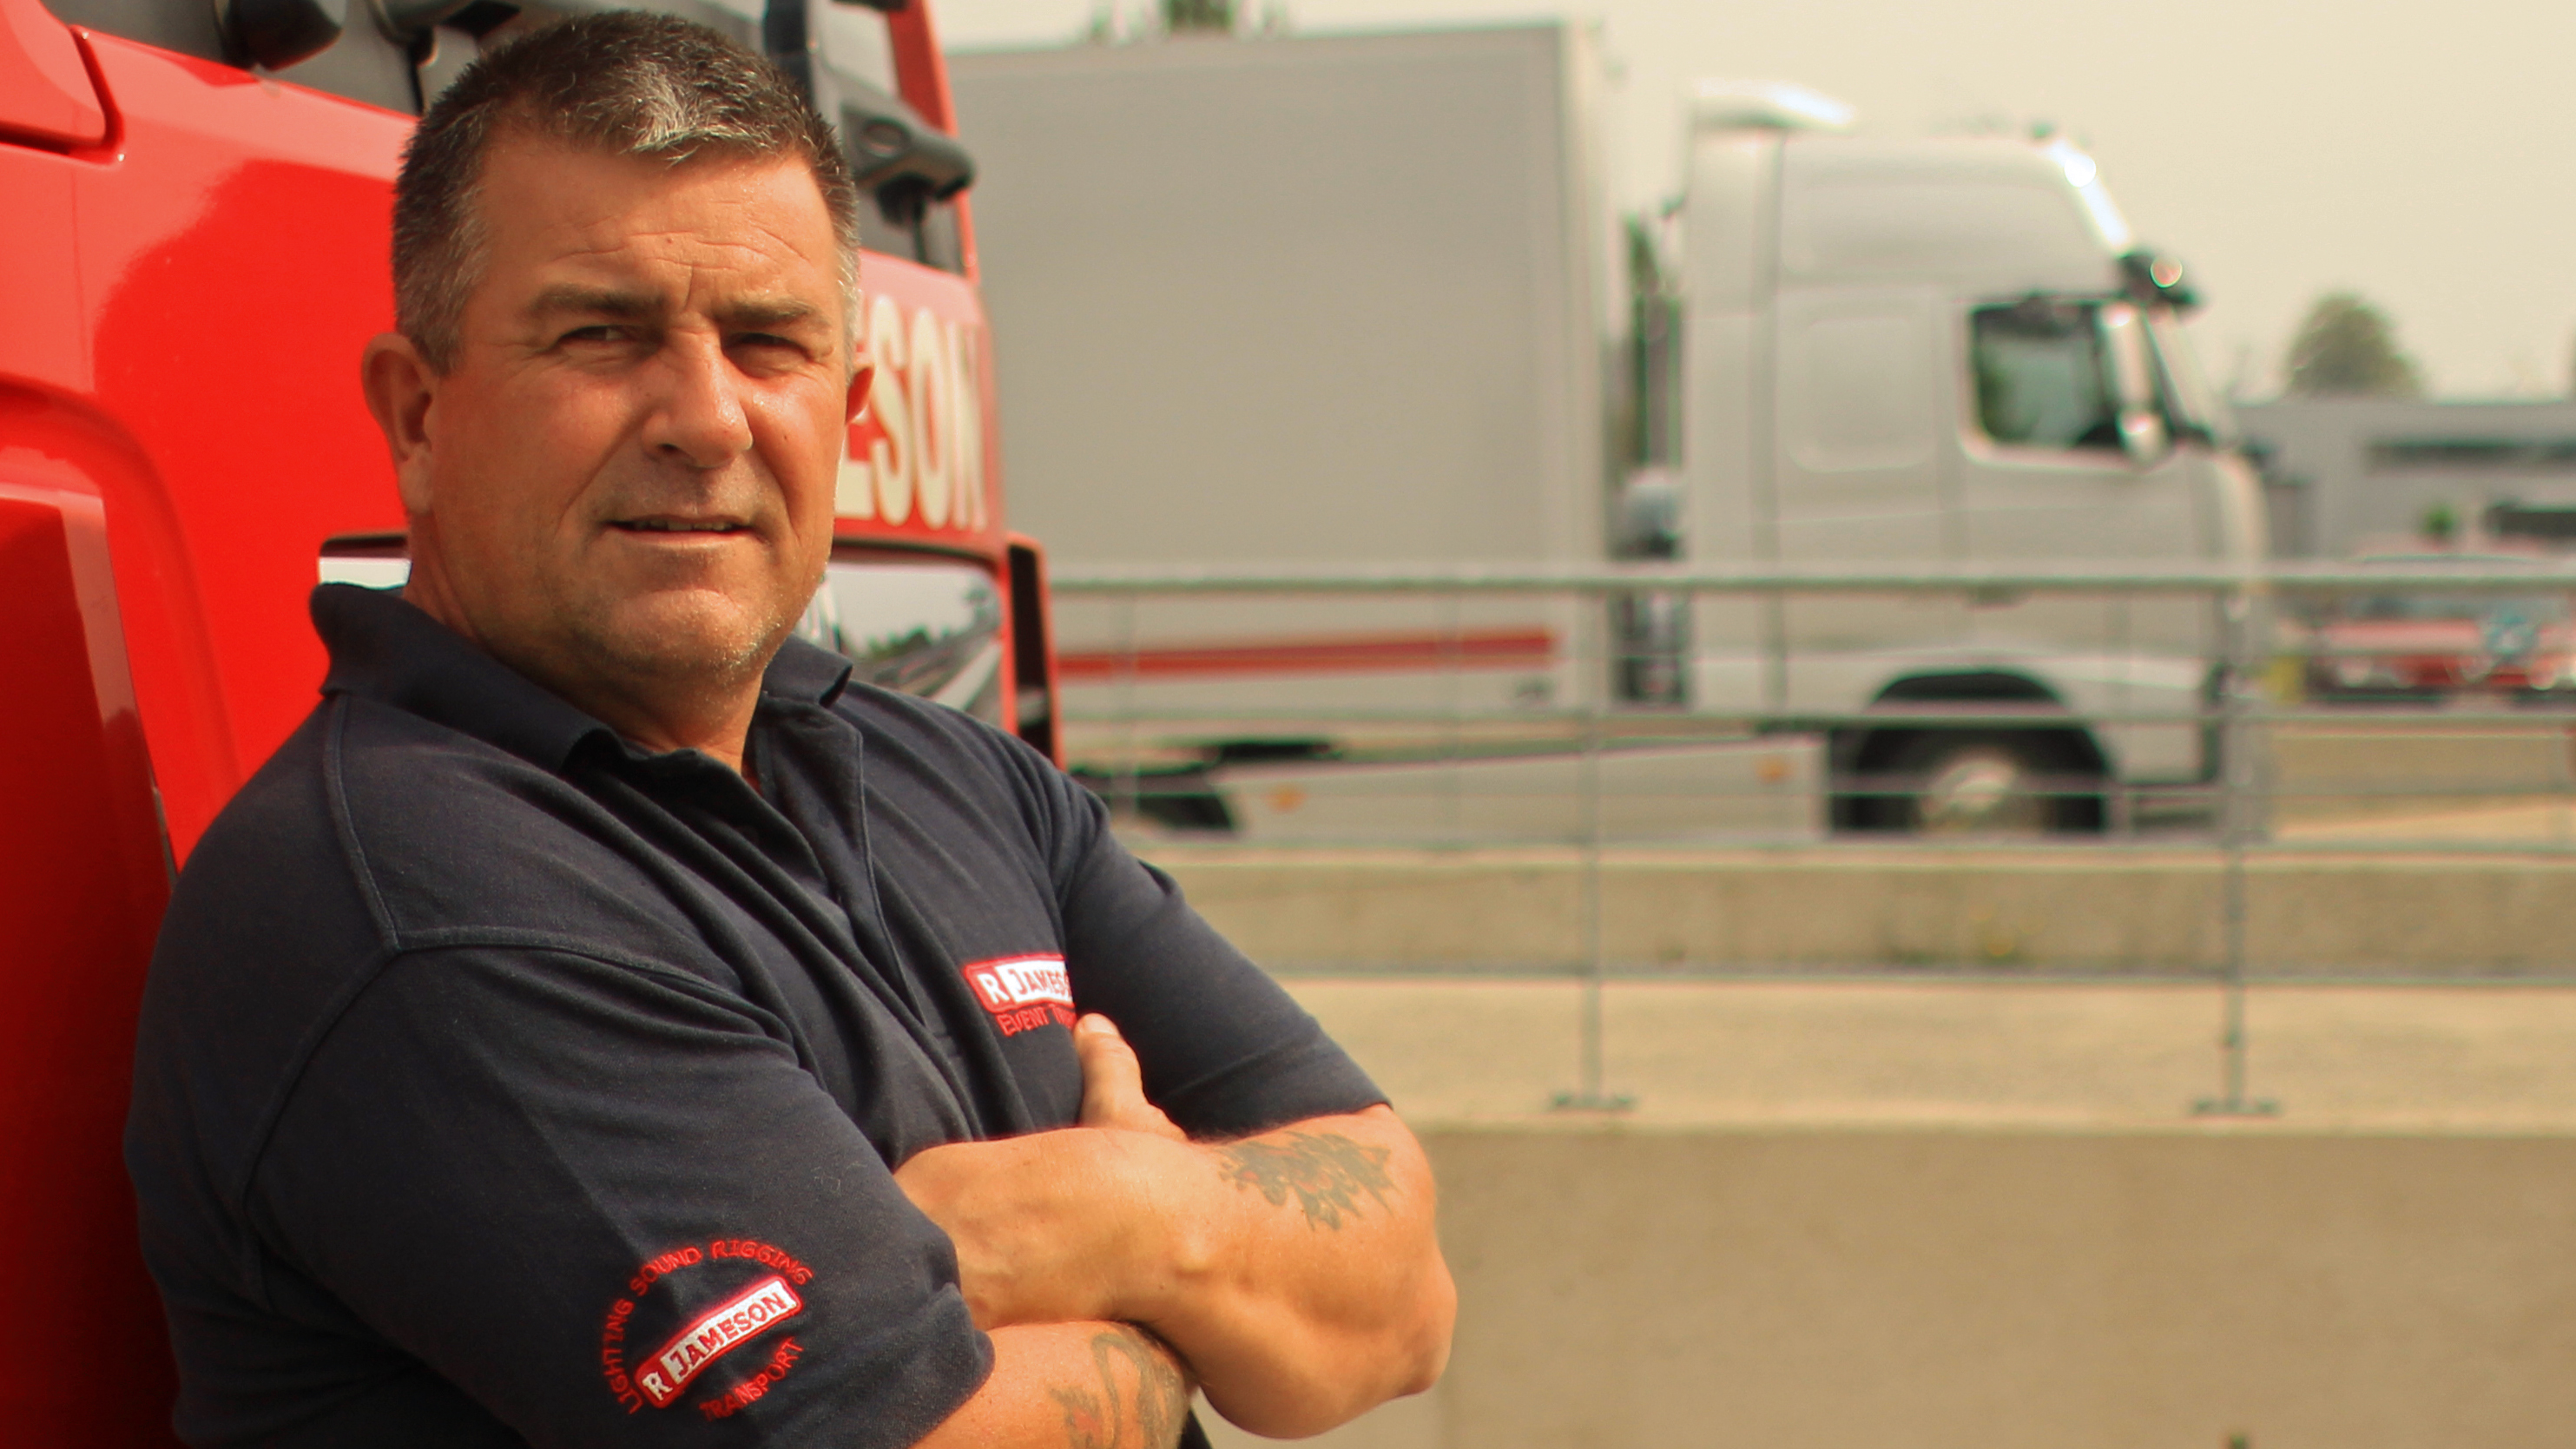 As a trucker, Vince Steptoe seems himself as the front line in Europe's migrant crisis (Leo Hornak)